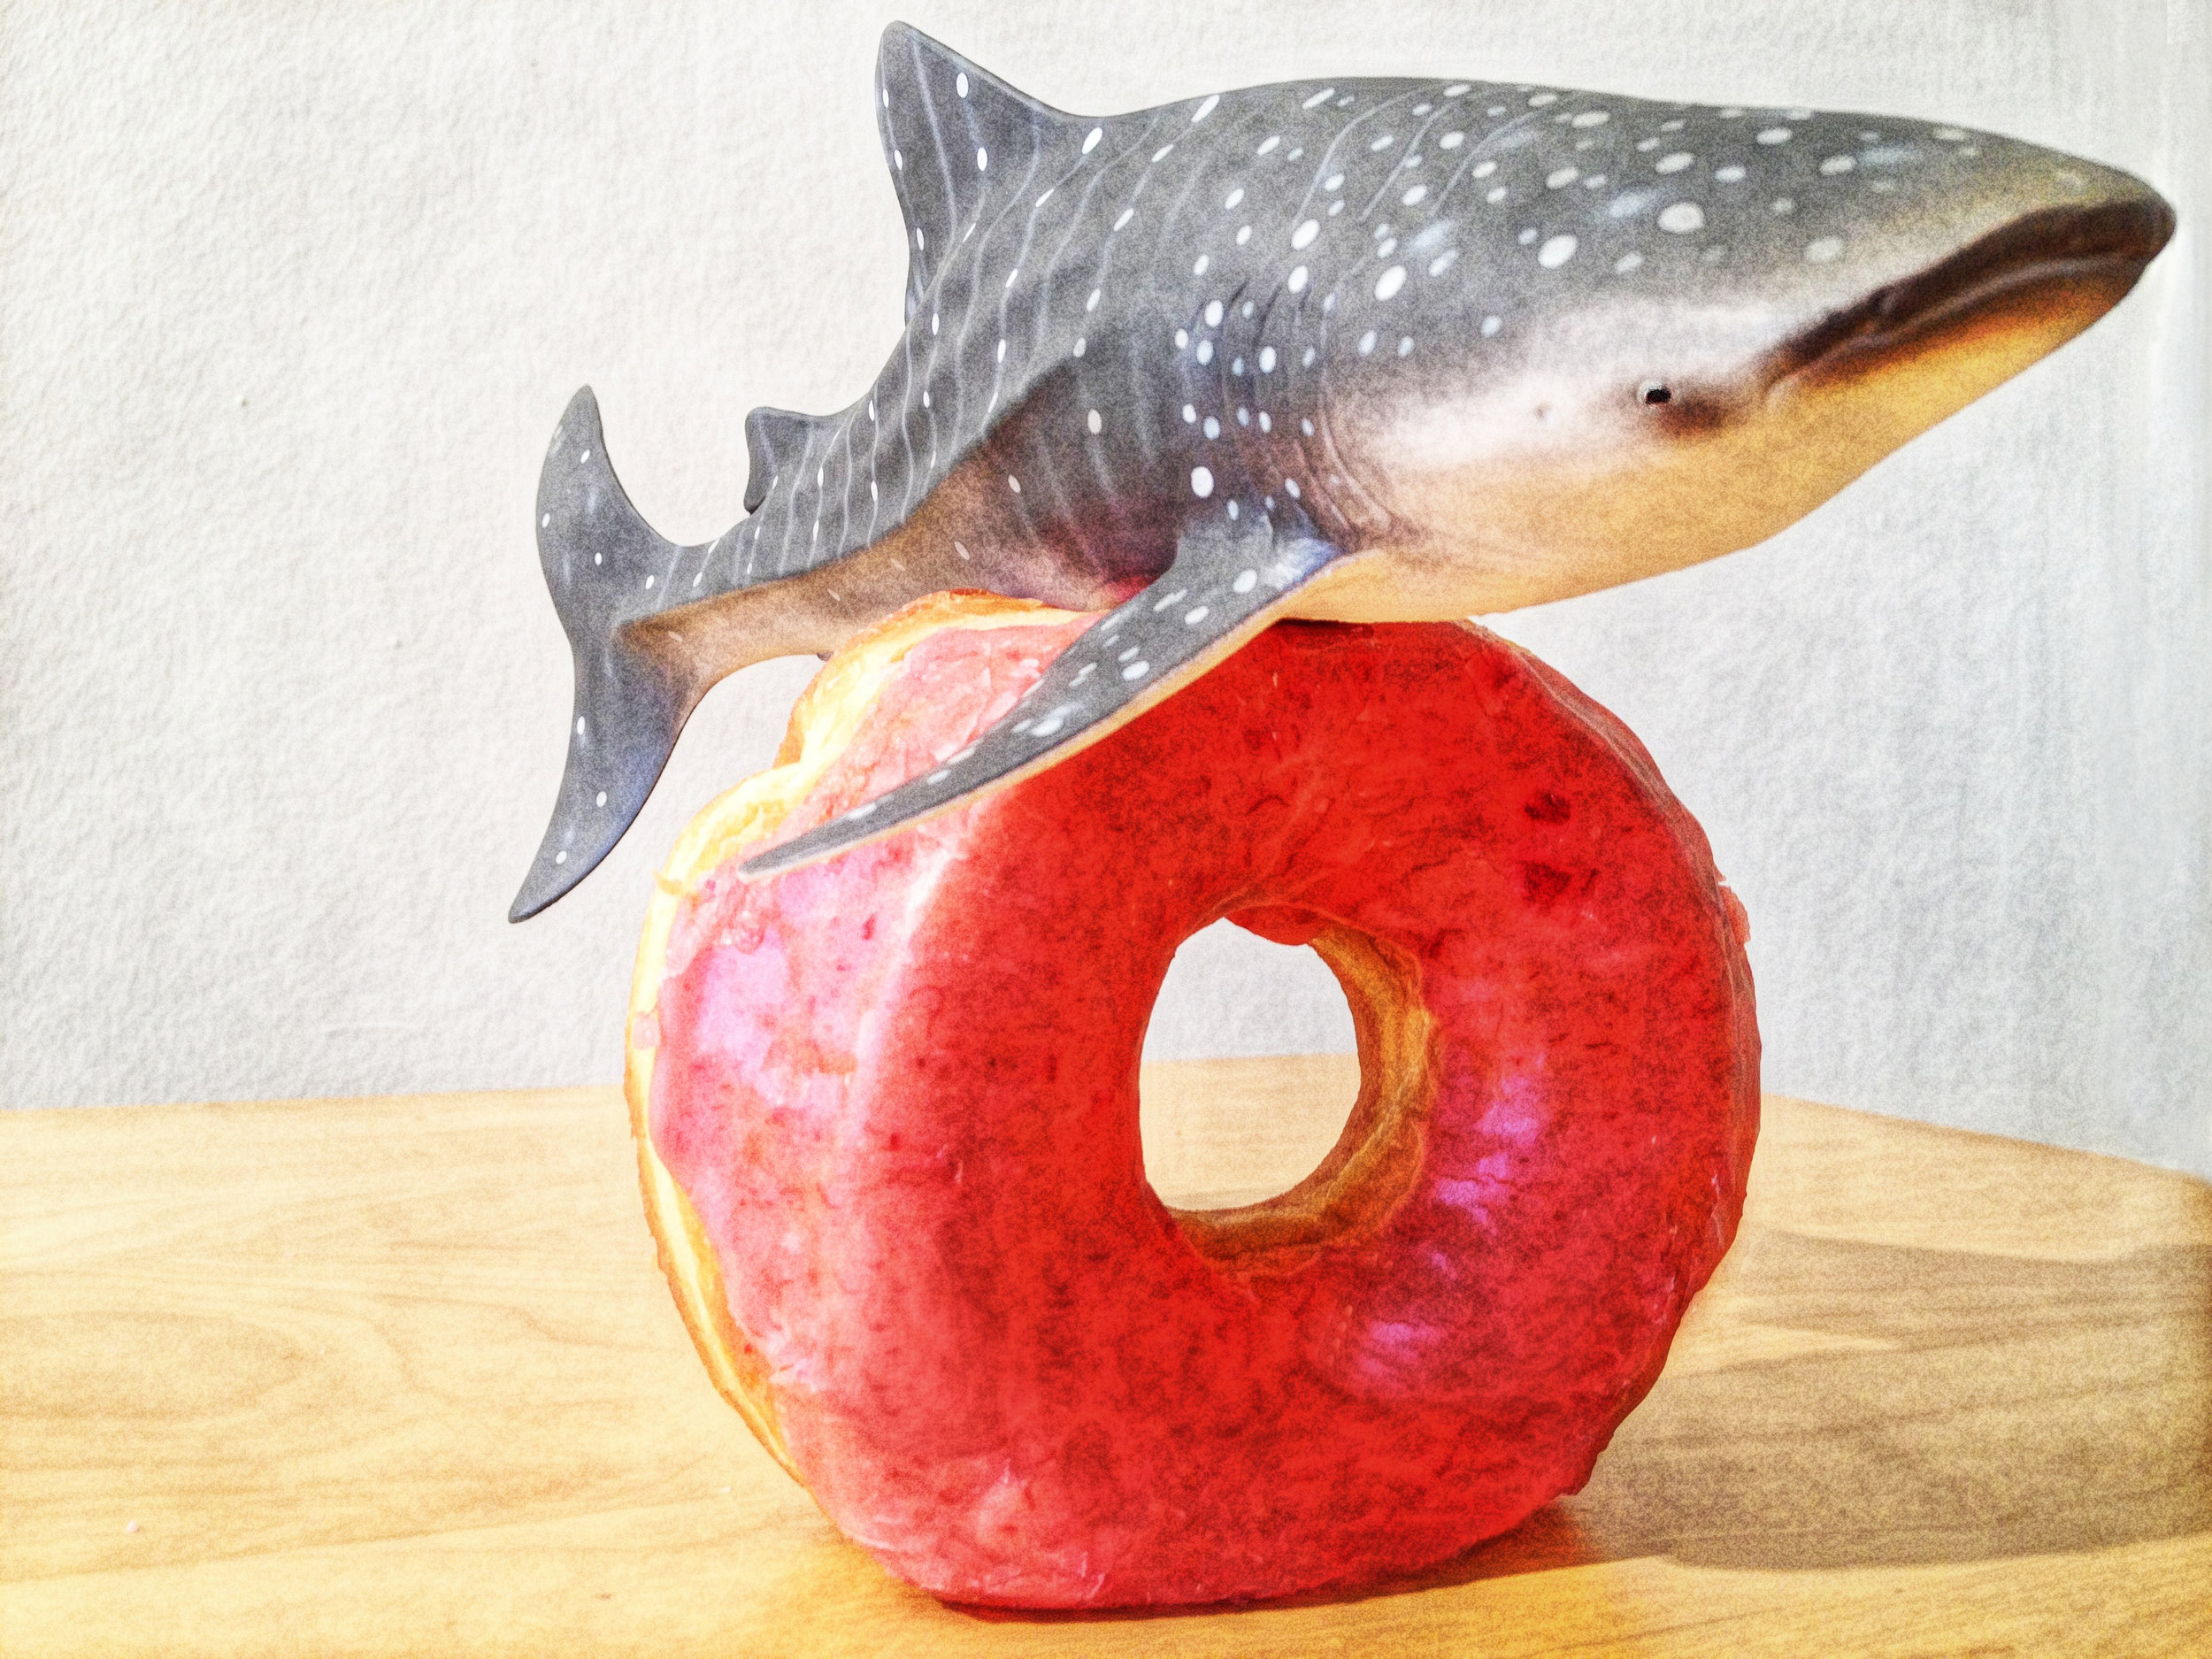 Whale Shark Jumps Raspberry Ring